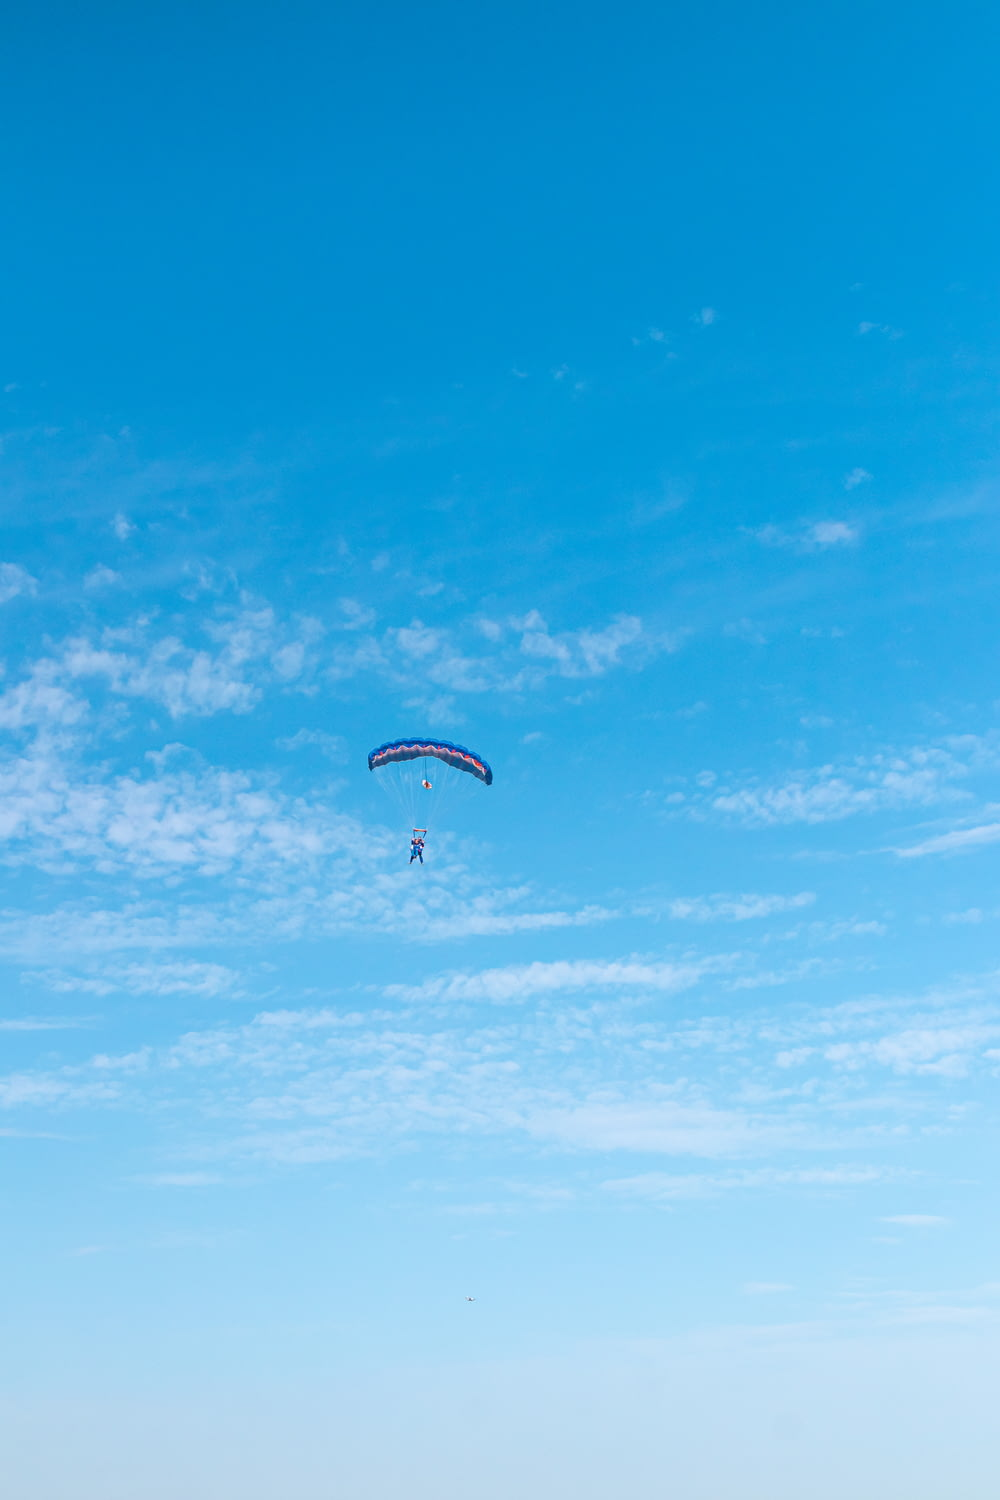 person in parachute under blue sky during daytime